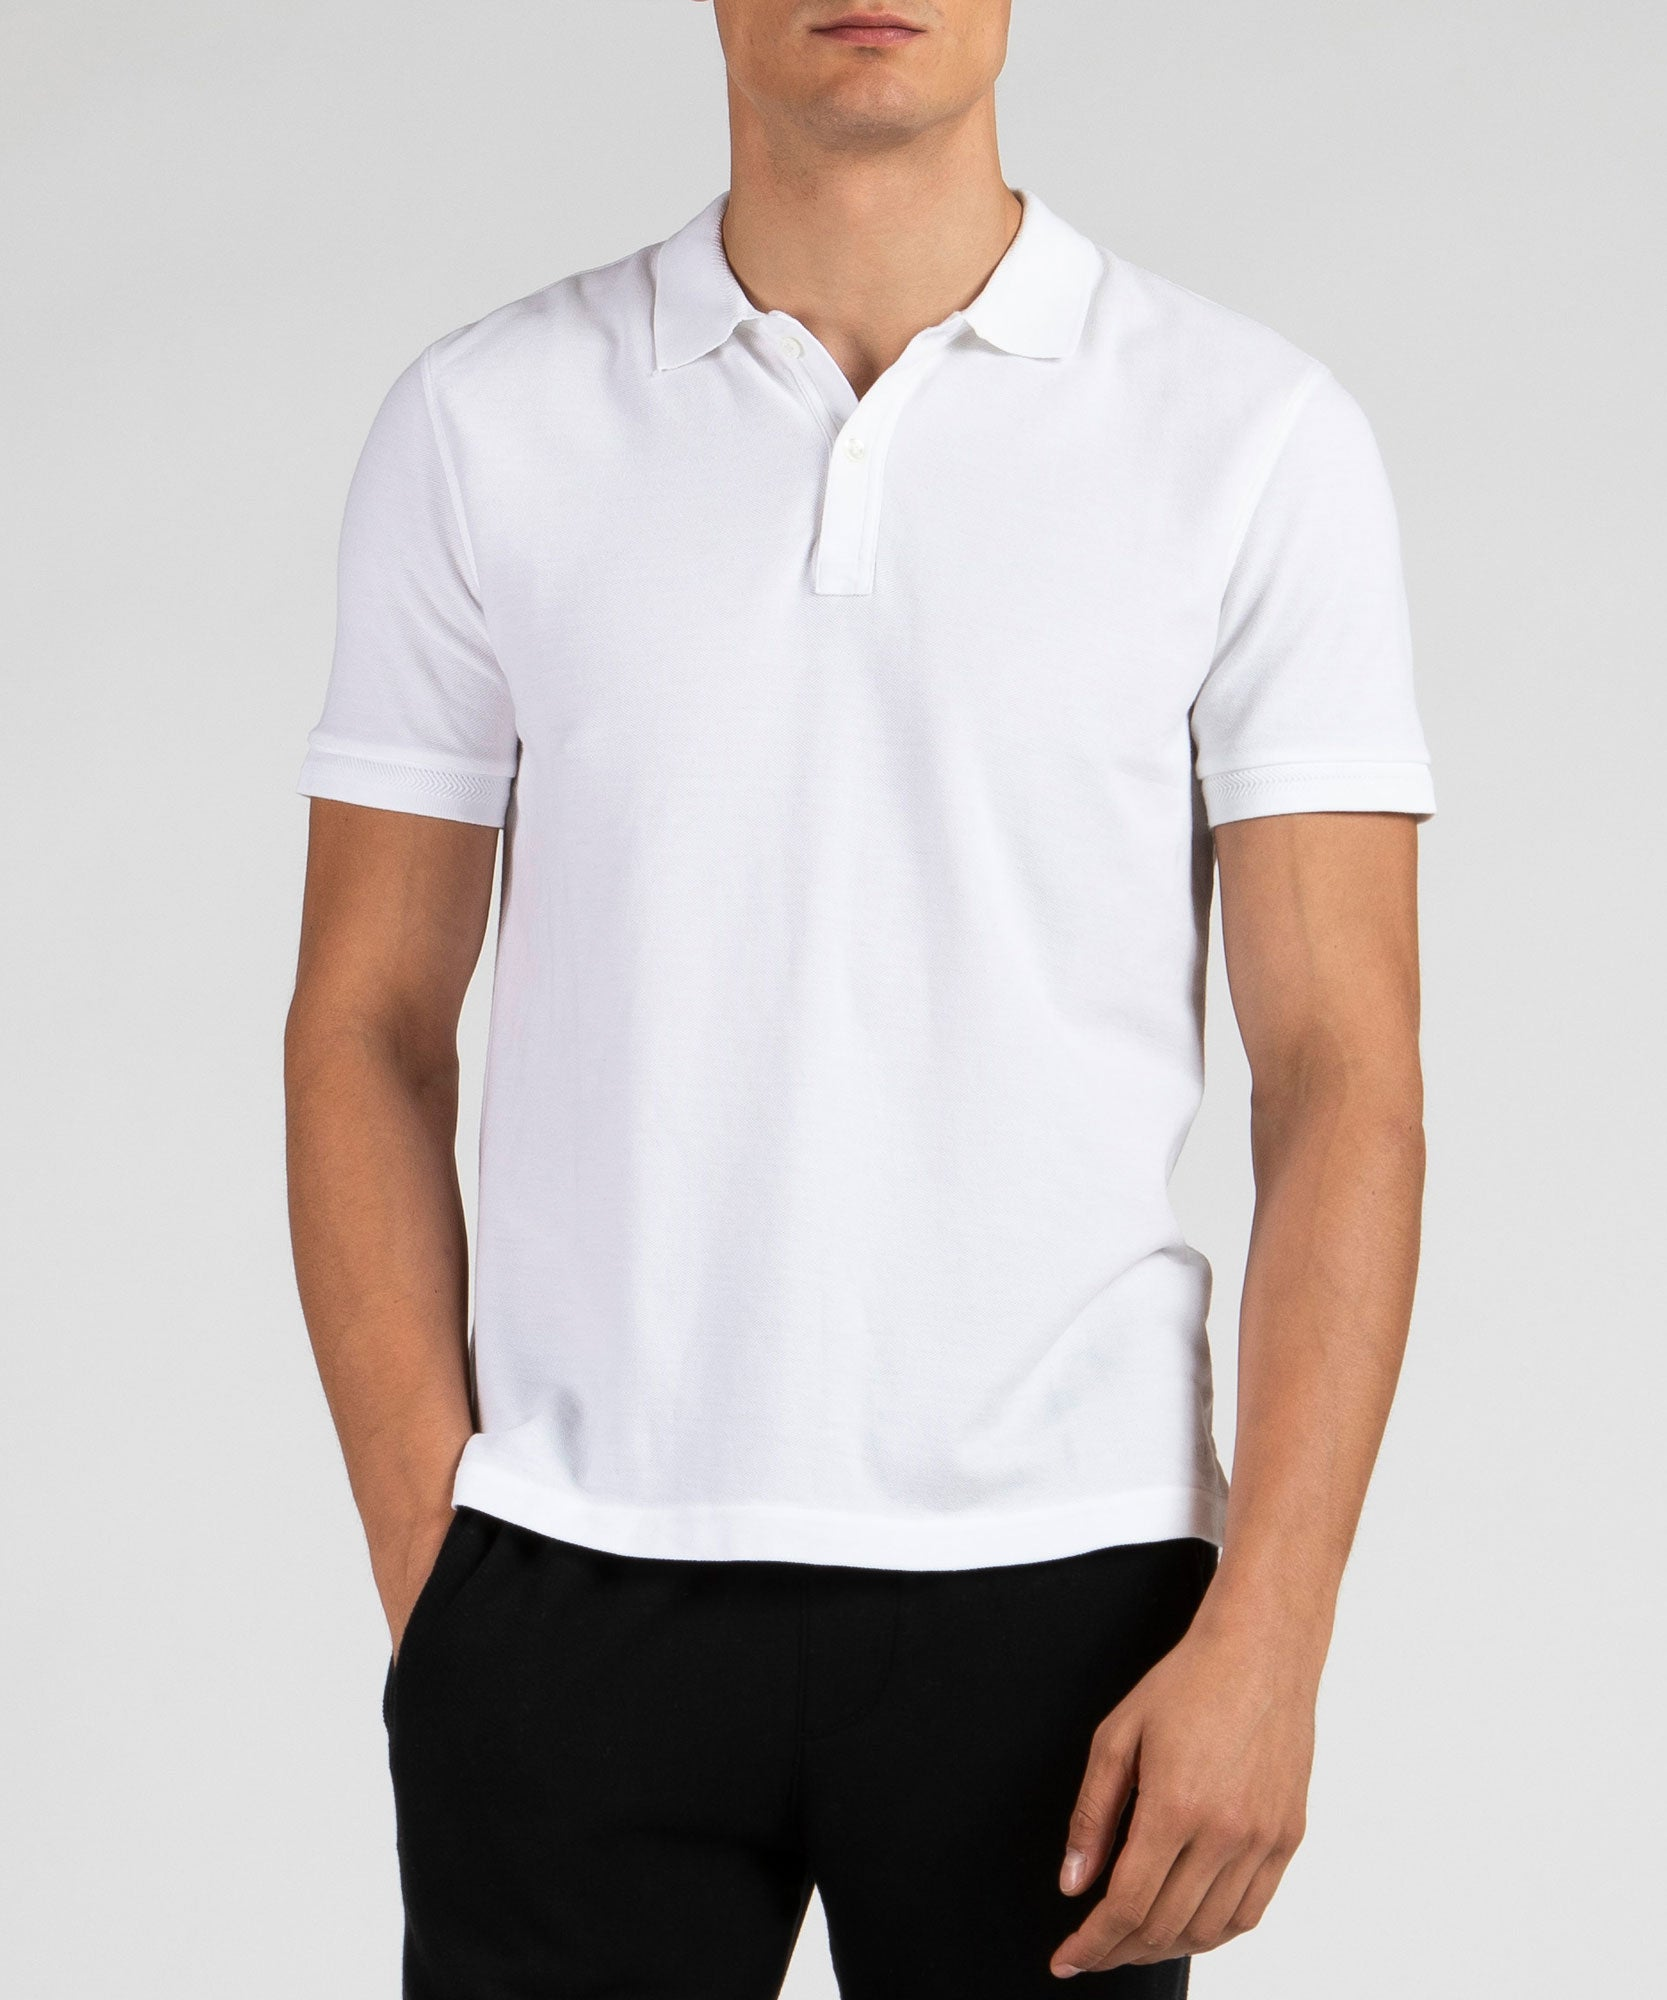 White Cotton Pique Classic Polo - Men's Polo Shirt by ATM Anthony Thomas Melillo